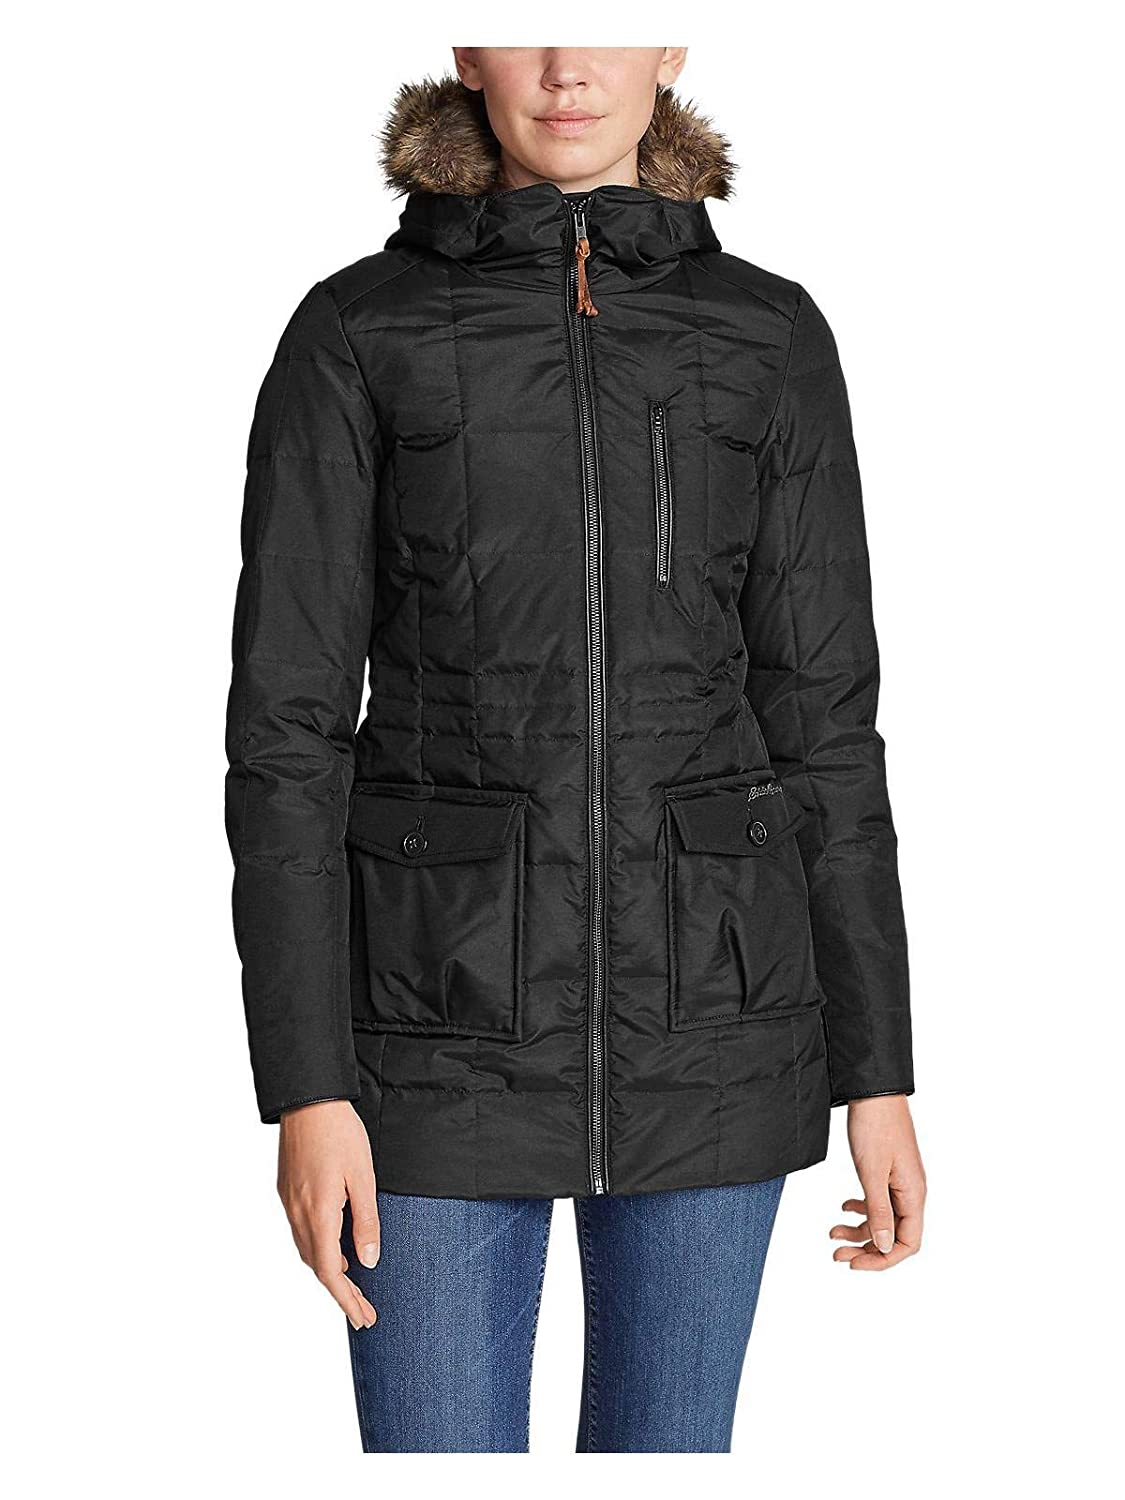 Eddie Bauer Women's Yukon Classic Down Parka Black Regular S 0065074100000040